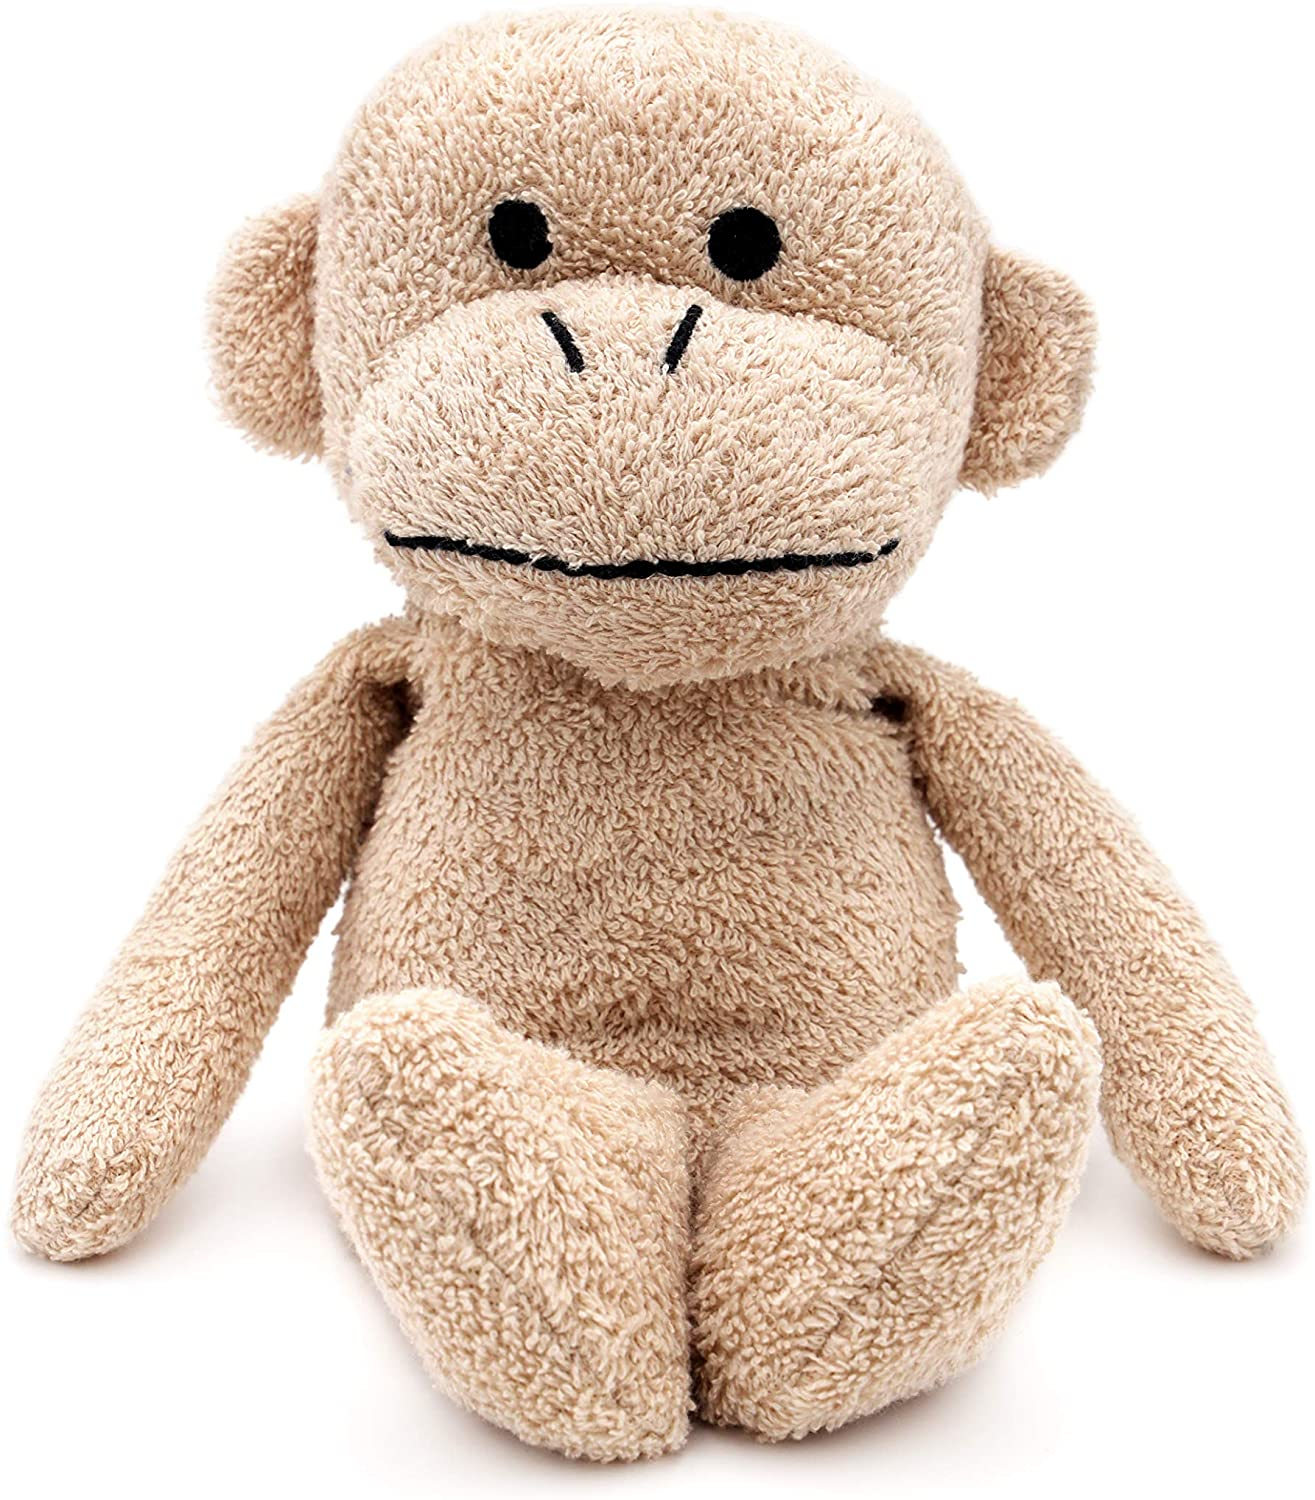 Thermal-Aid Zoo — Jo Jo the Monkey — Microwavable Stuffed Animal — Kids Hot and Cold Pain Relief